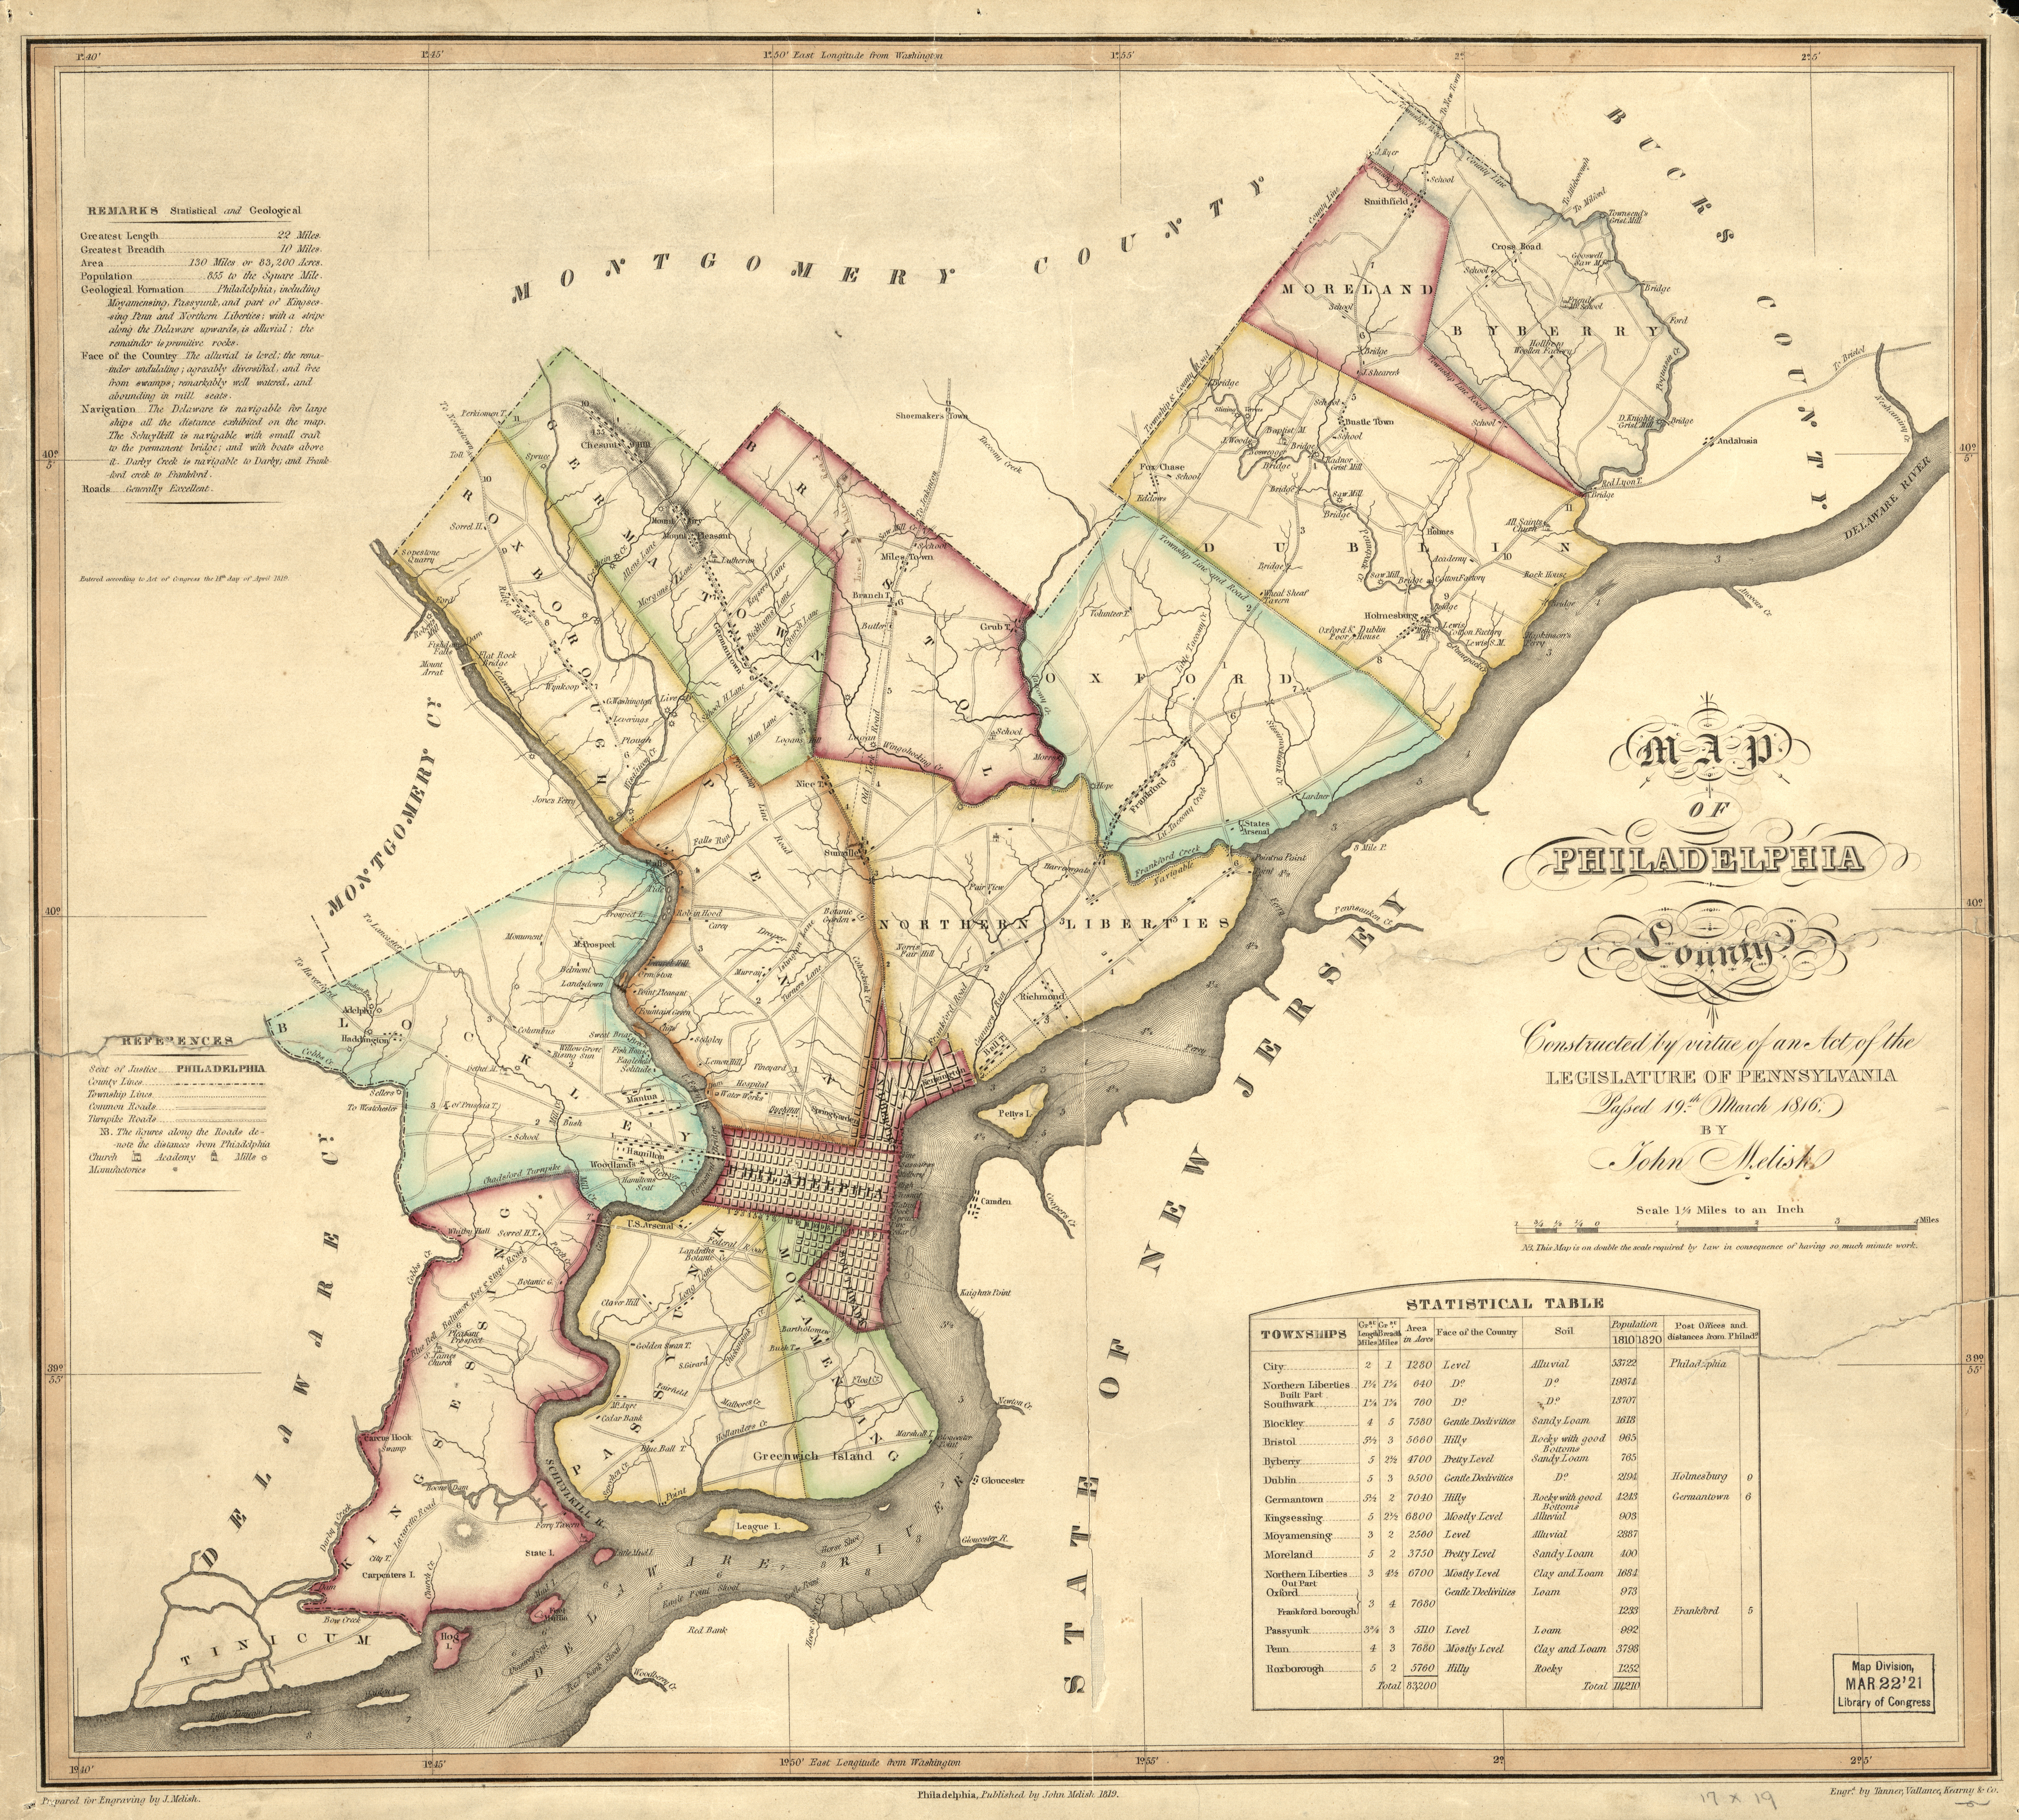 1816 Map of Philadelphia County, by Melish